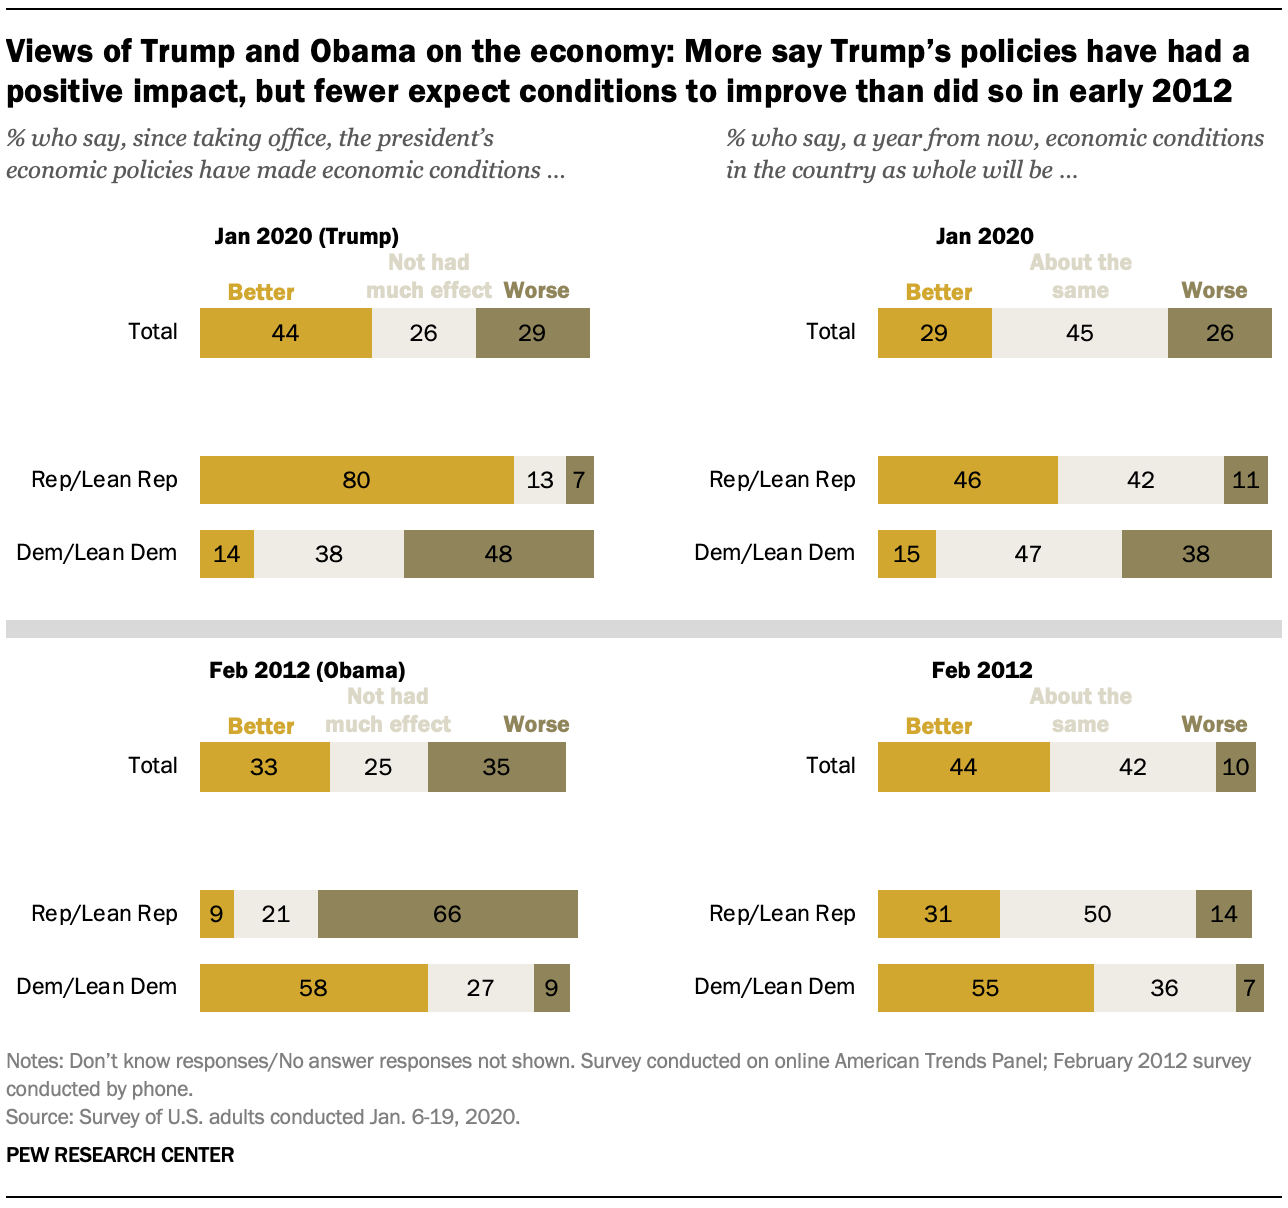 Views of Trump and Obama on the economy: More say Trump's policies have had a positive impact, but fewer expect conditions to improve than did so in early 2012